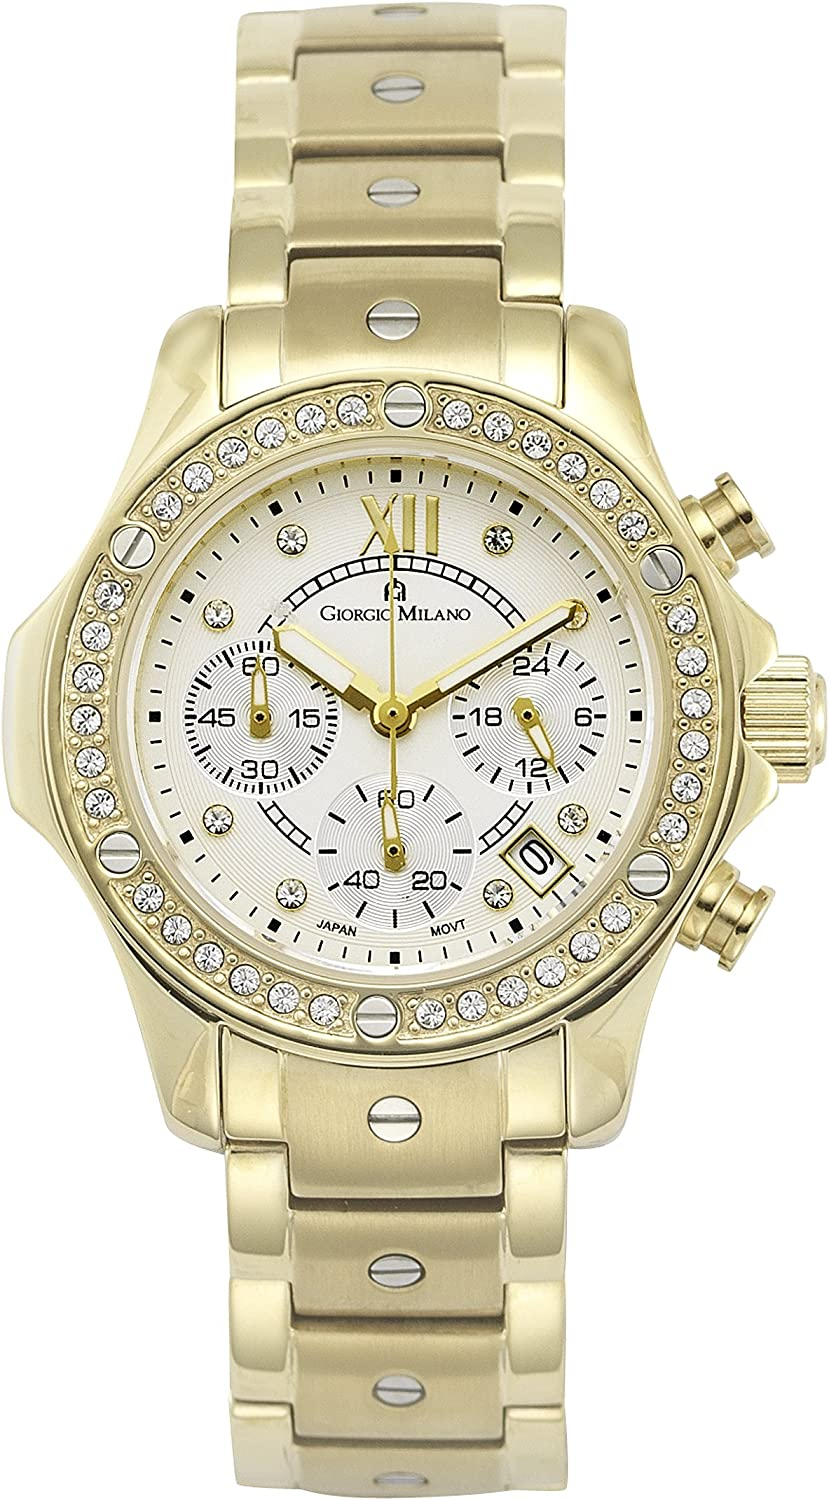 Giorgio Milano Womens Watch Clara Round Stainless Steel case with Stones, Dial with Roman Numbers, Stone Markers, 3 sub dials and Date, Stainless Steel Bracelet